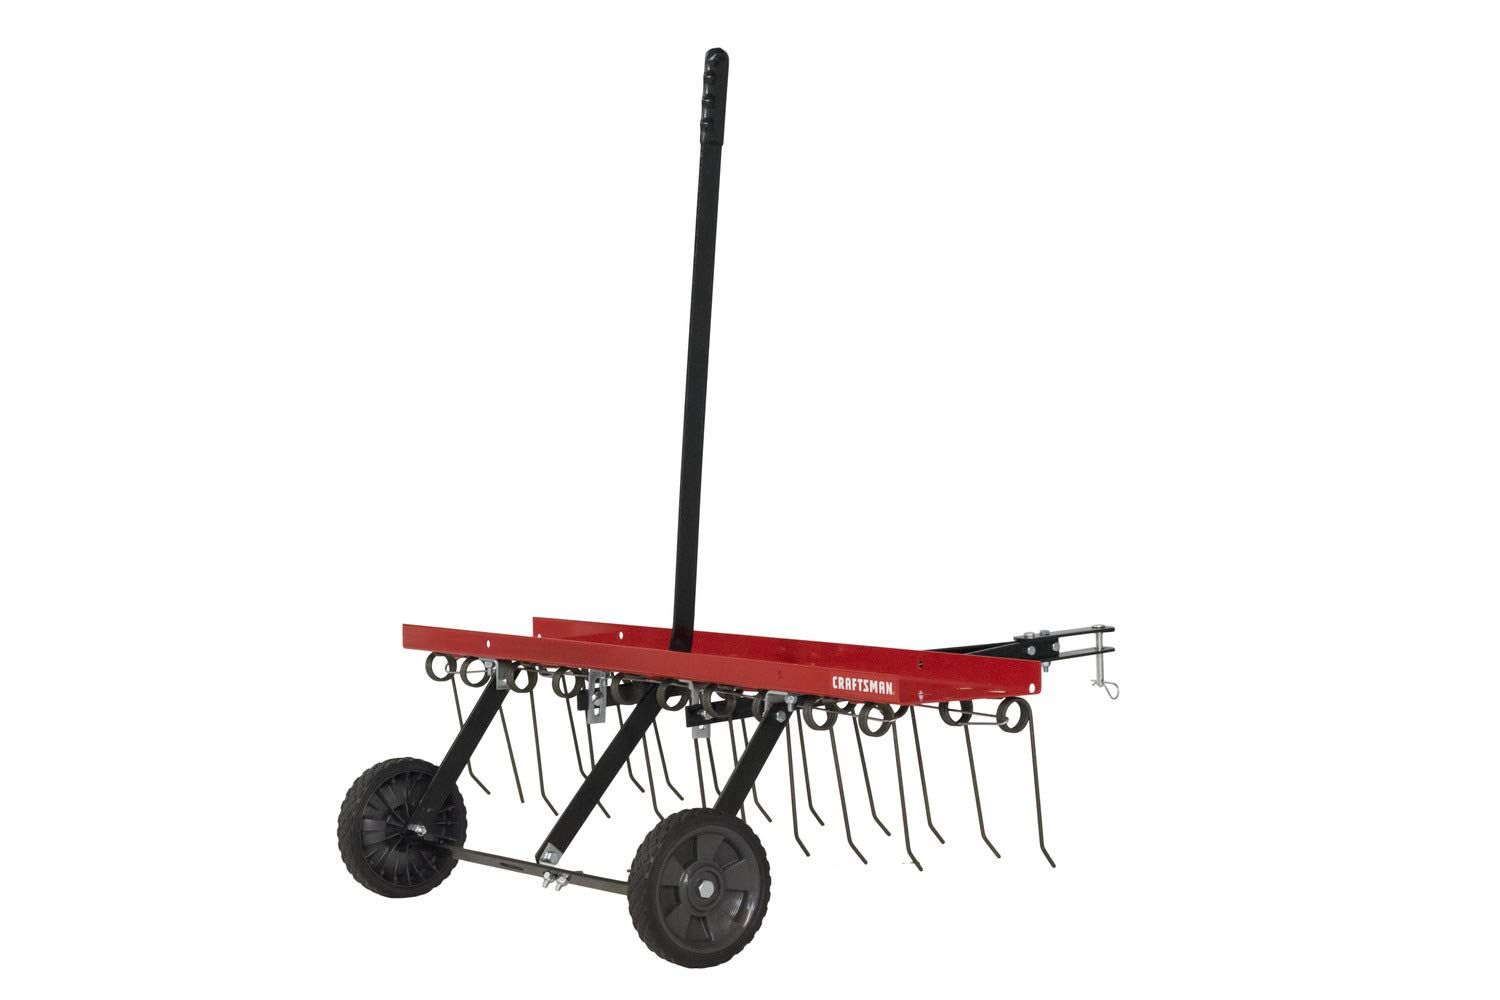 Craftsman Cmxgzbf7124315 40 Detatcher Tow Lawn Dethatcher Click Image For More Details It Is An Affiliate Link To Amazon In 2020 Dethatching Lawn Craftsman Lawn